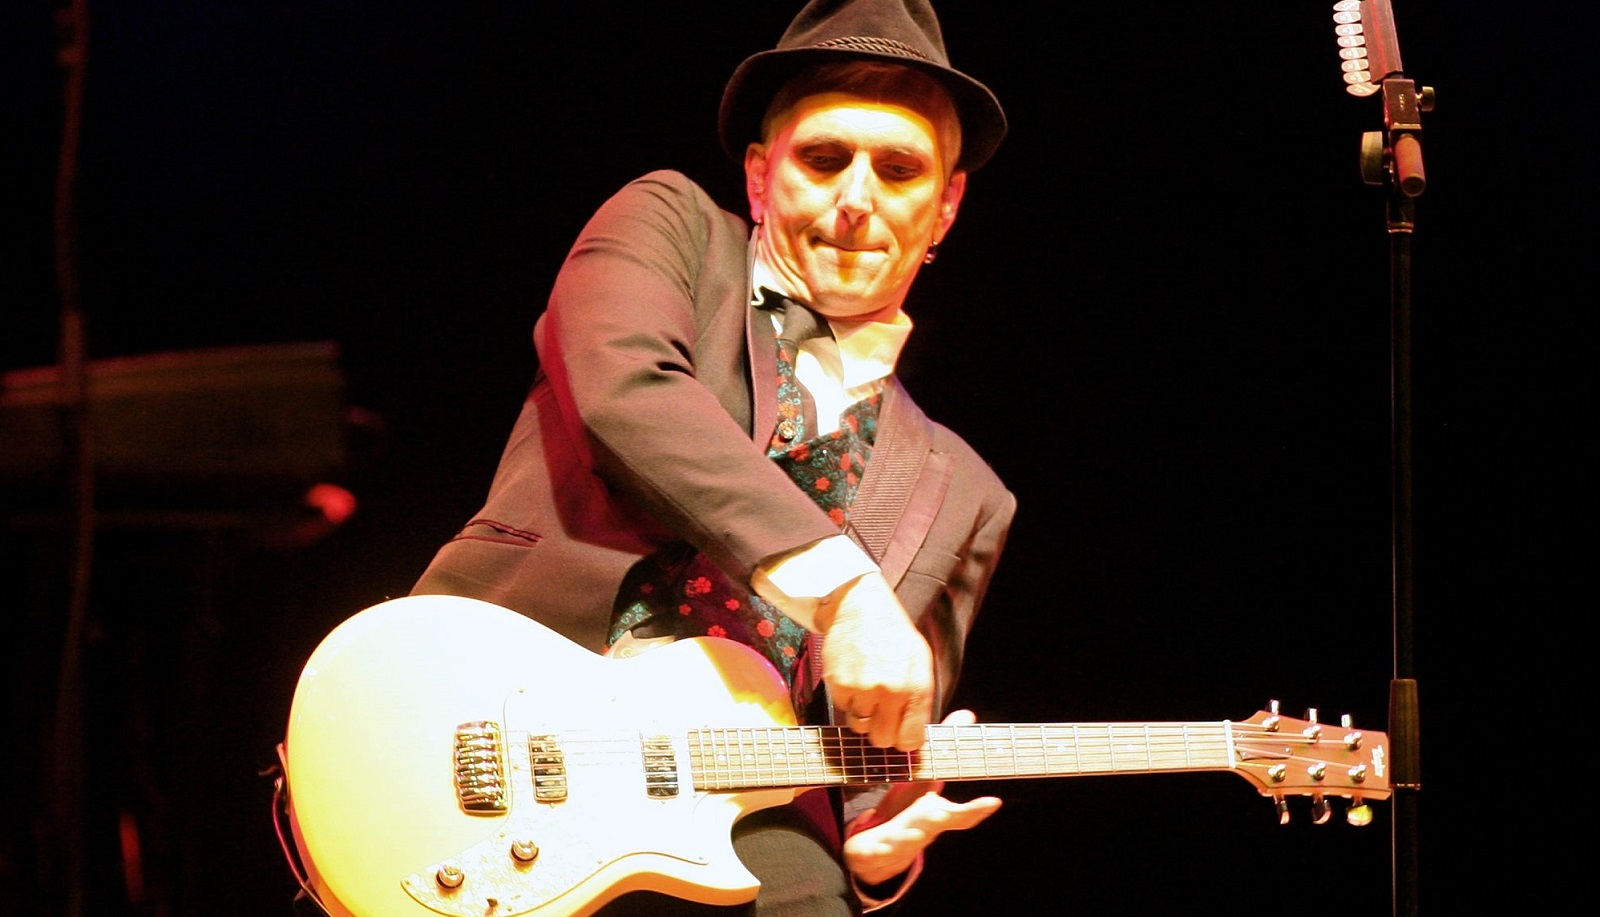 Art Alexakis and Everclear headlined a strange Summerland Tour bill, according to News reviewer Jeff Miers. (Getty Images)